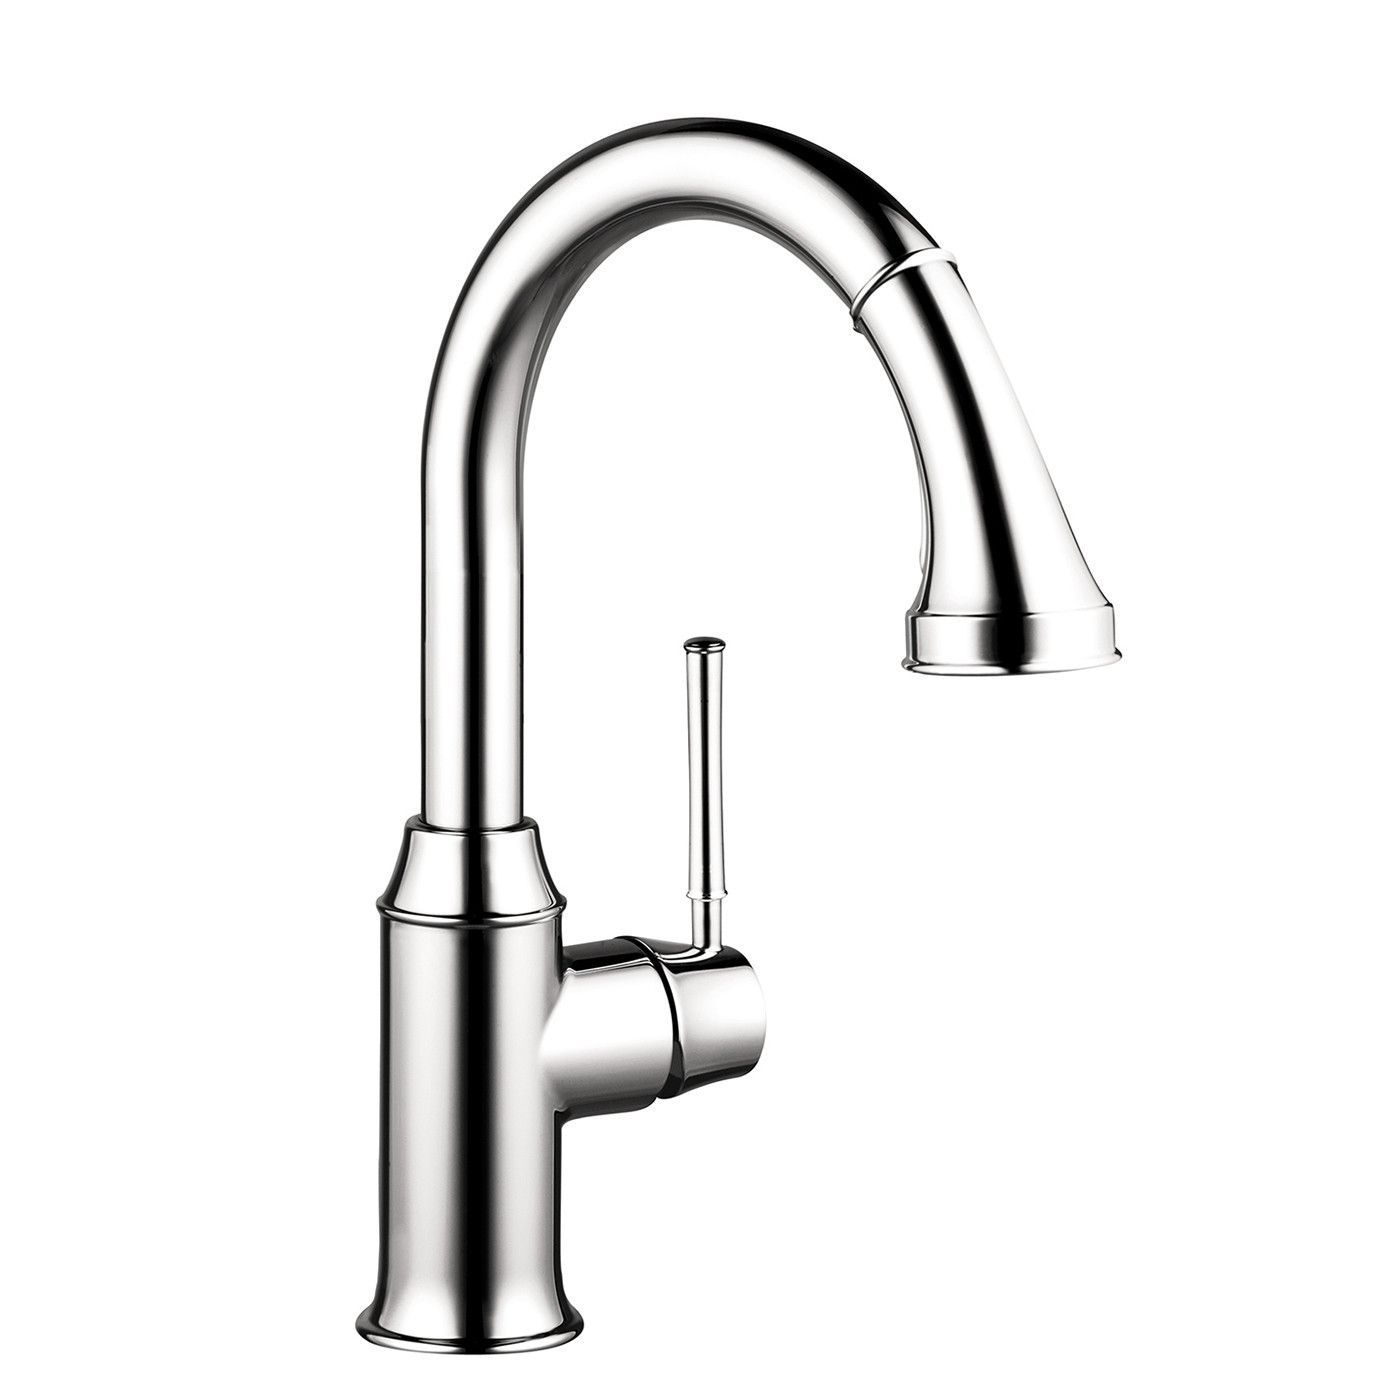 Hansgrohe 04216000 Chrome Talis C Pull-Down Prep Kitchen Faucet with ...